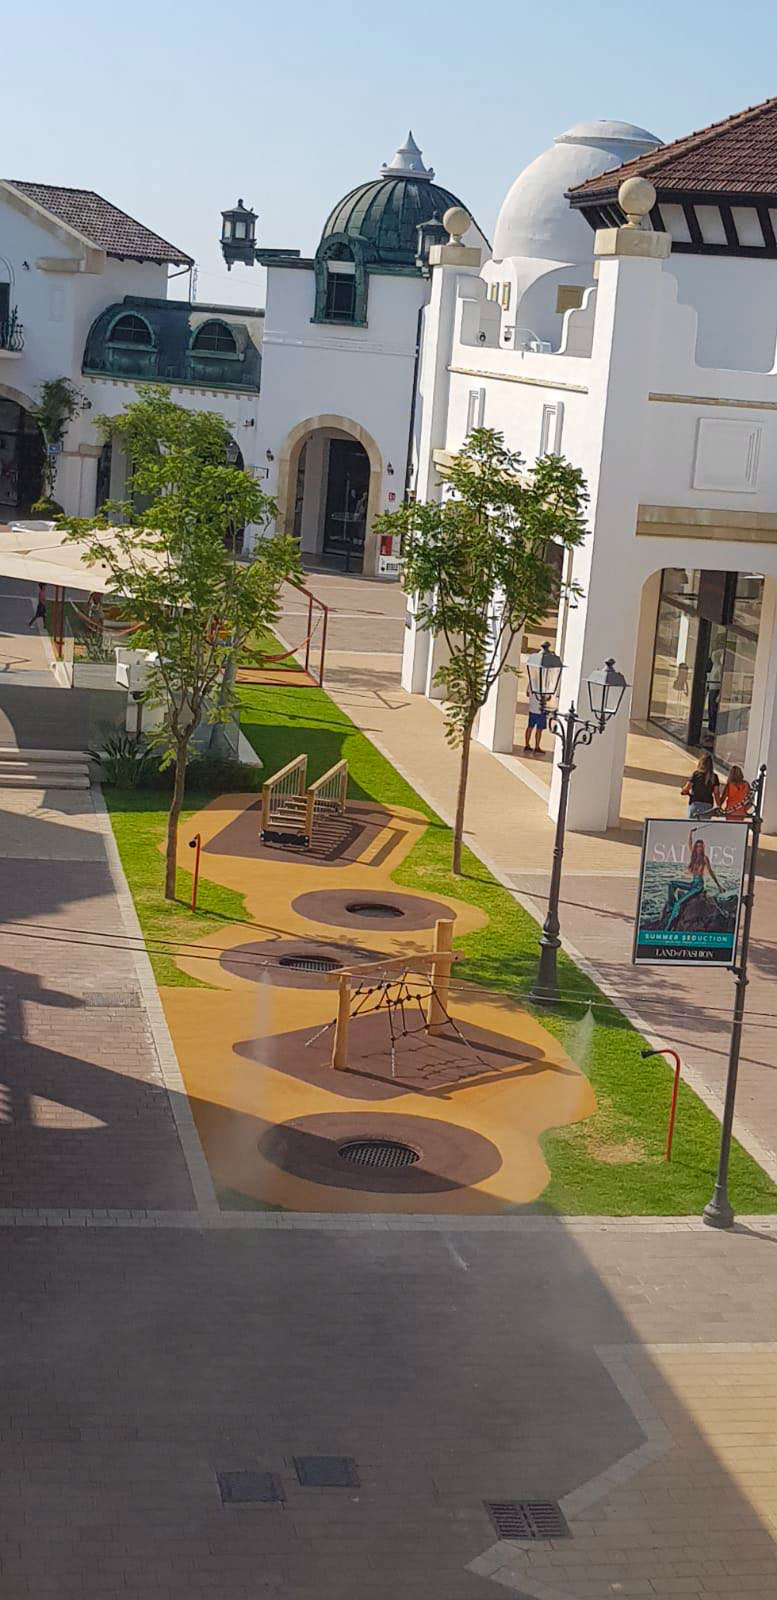 Puglia Outlet Village - Play area - Solids | Integrated Design Solutions